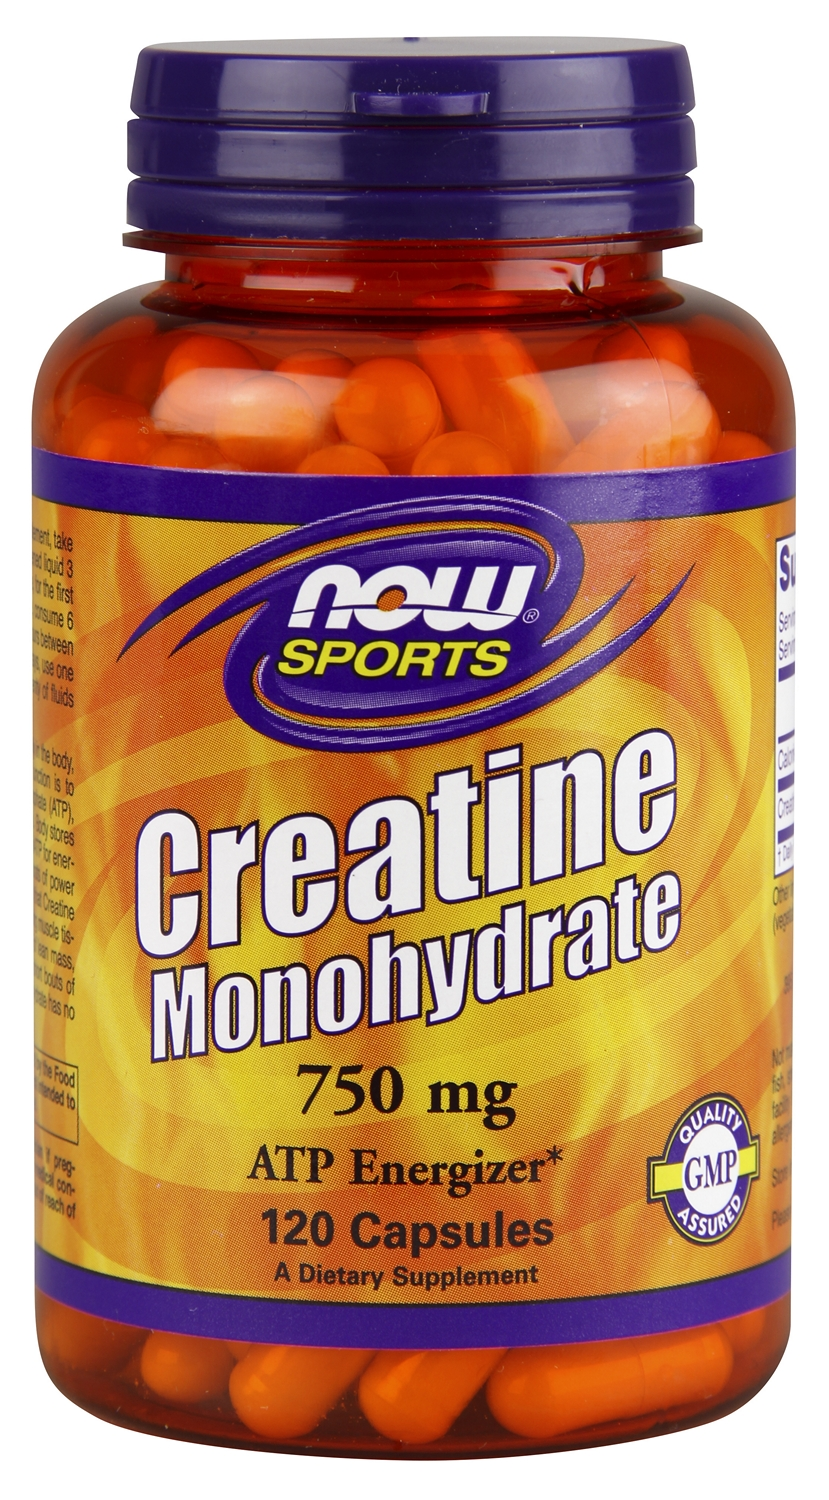 Creatine Monohydrate 750 mg 120 caps by NOW